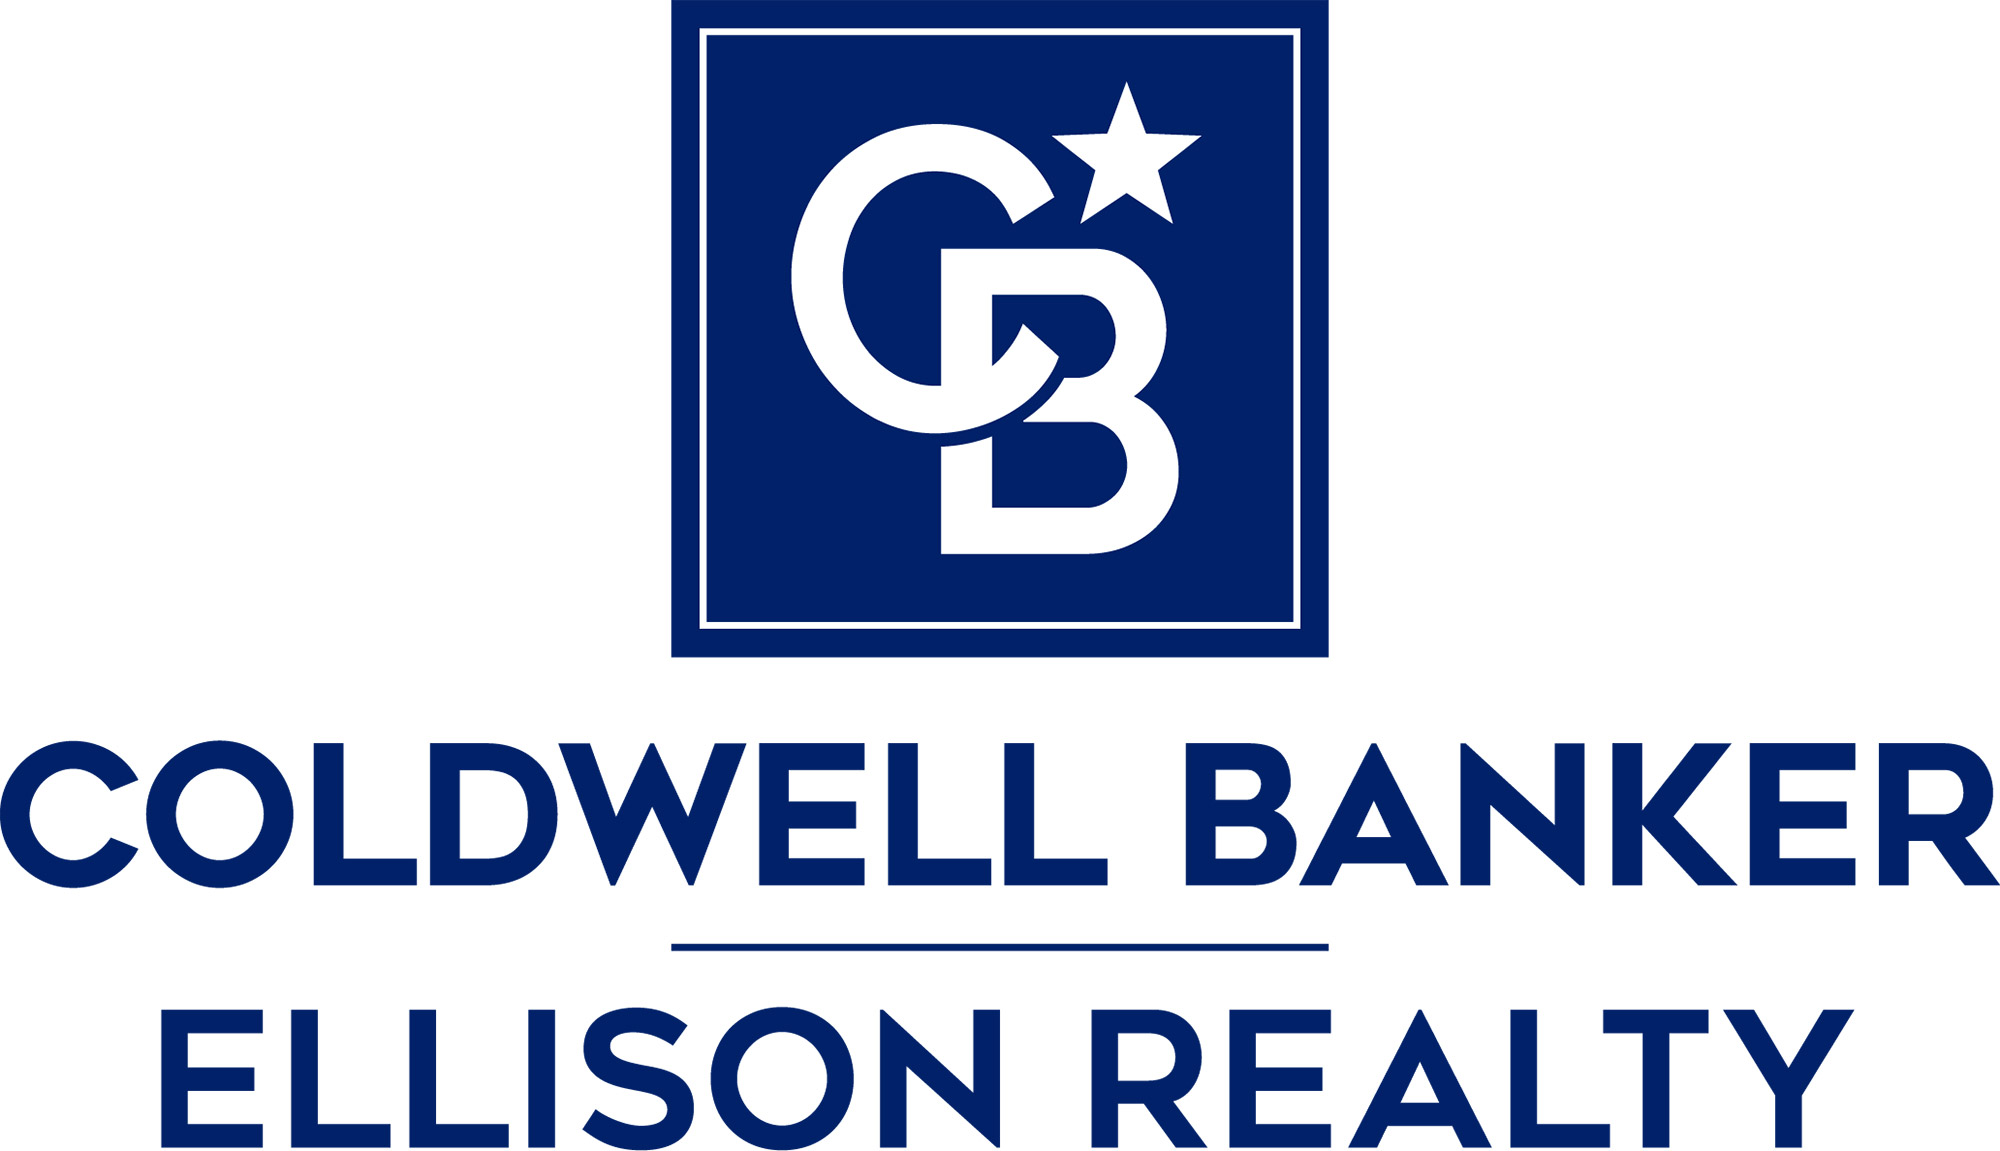 Chris Kortright - Coldwell Banker Ellison Realty Logo